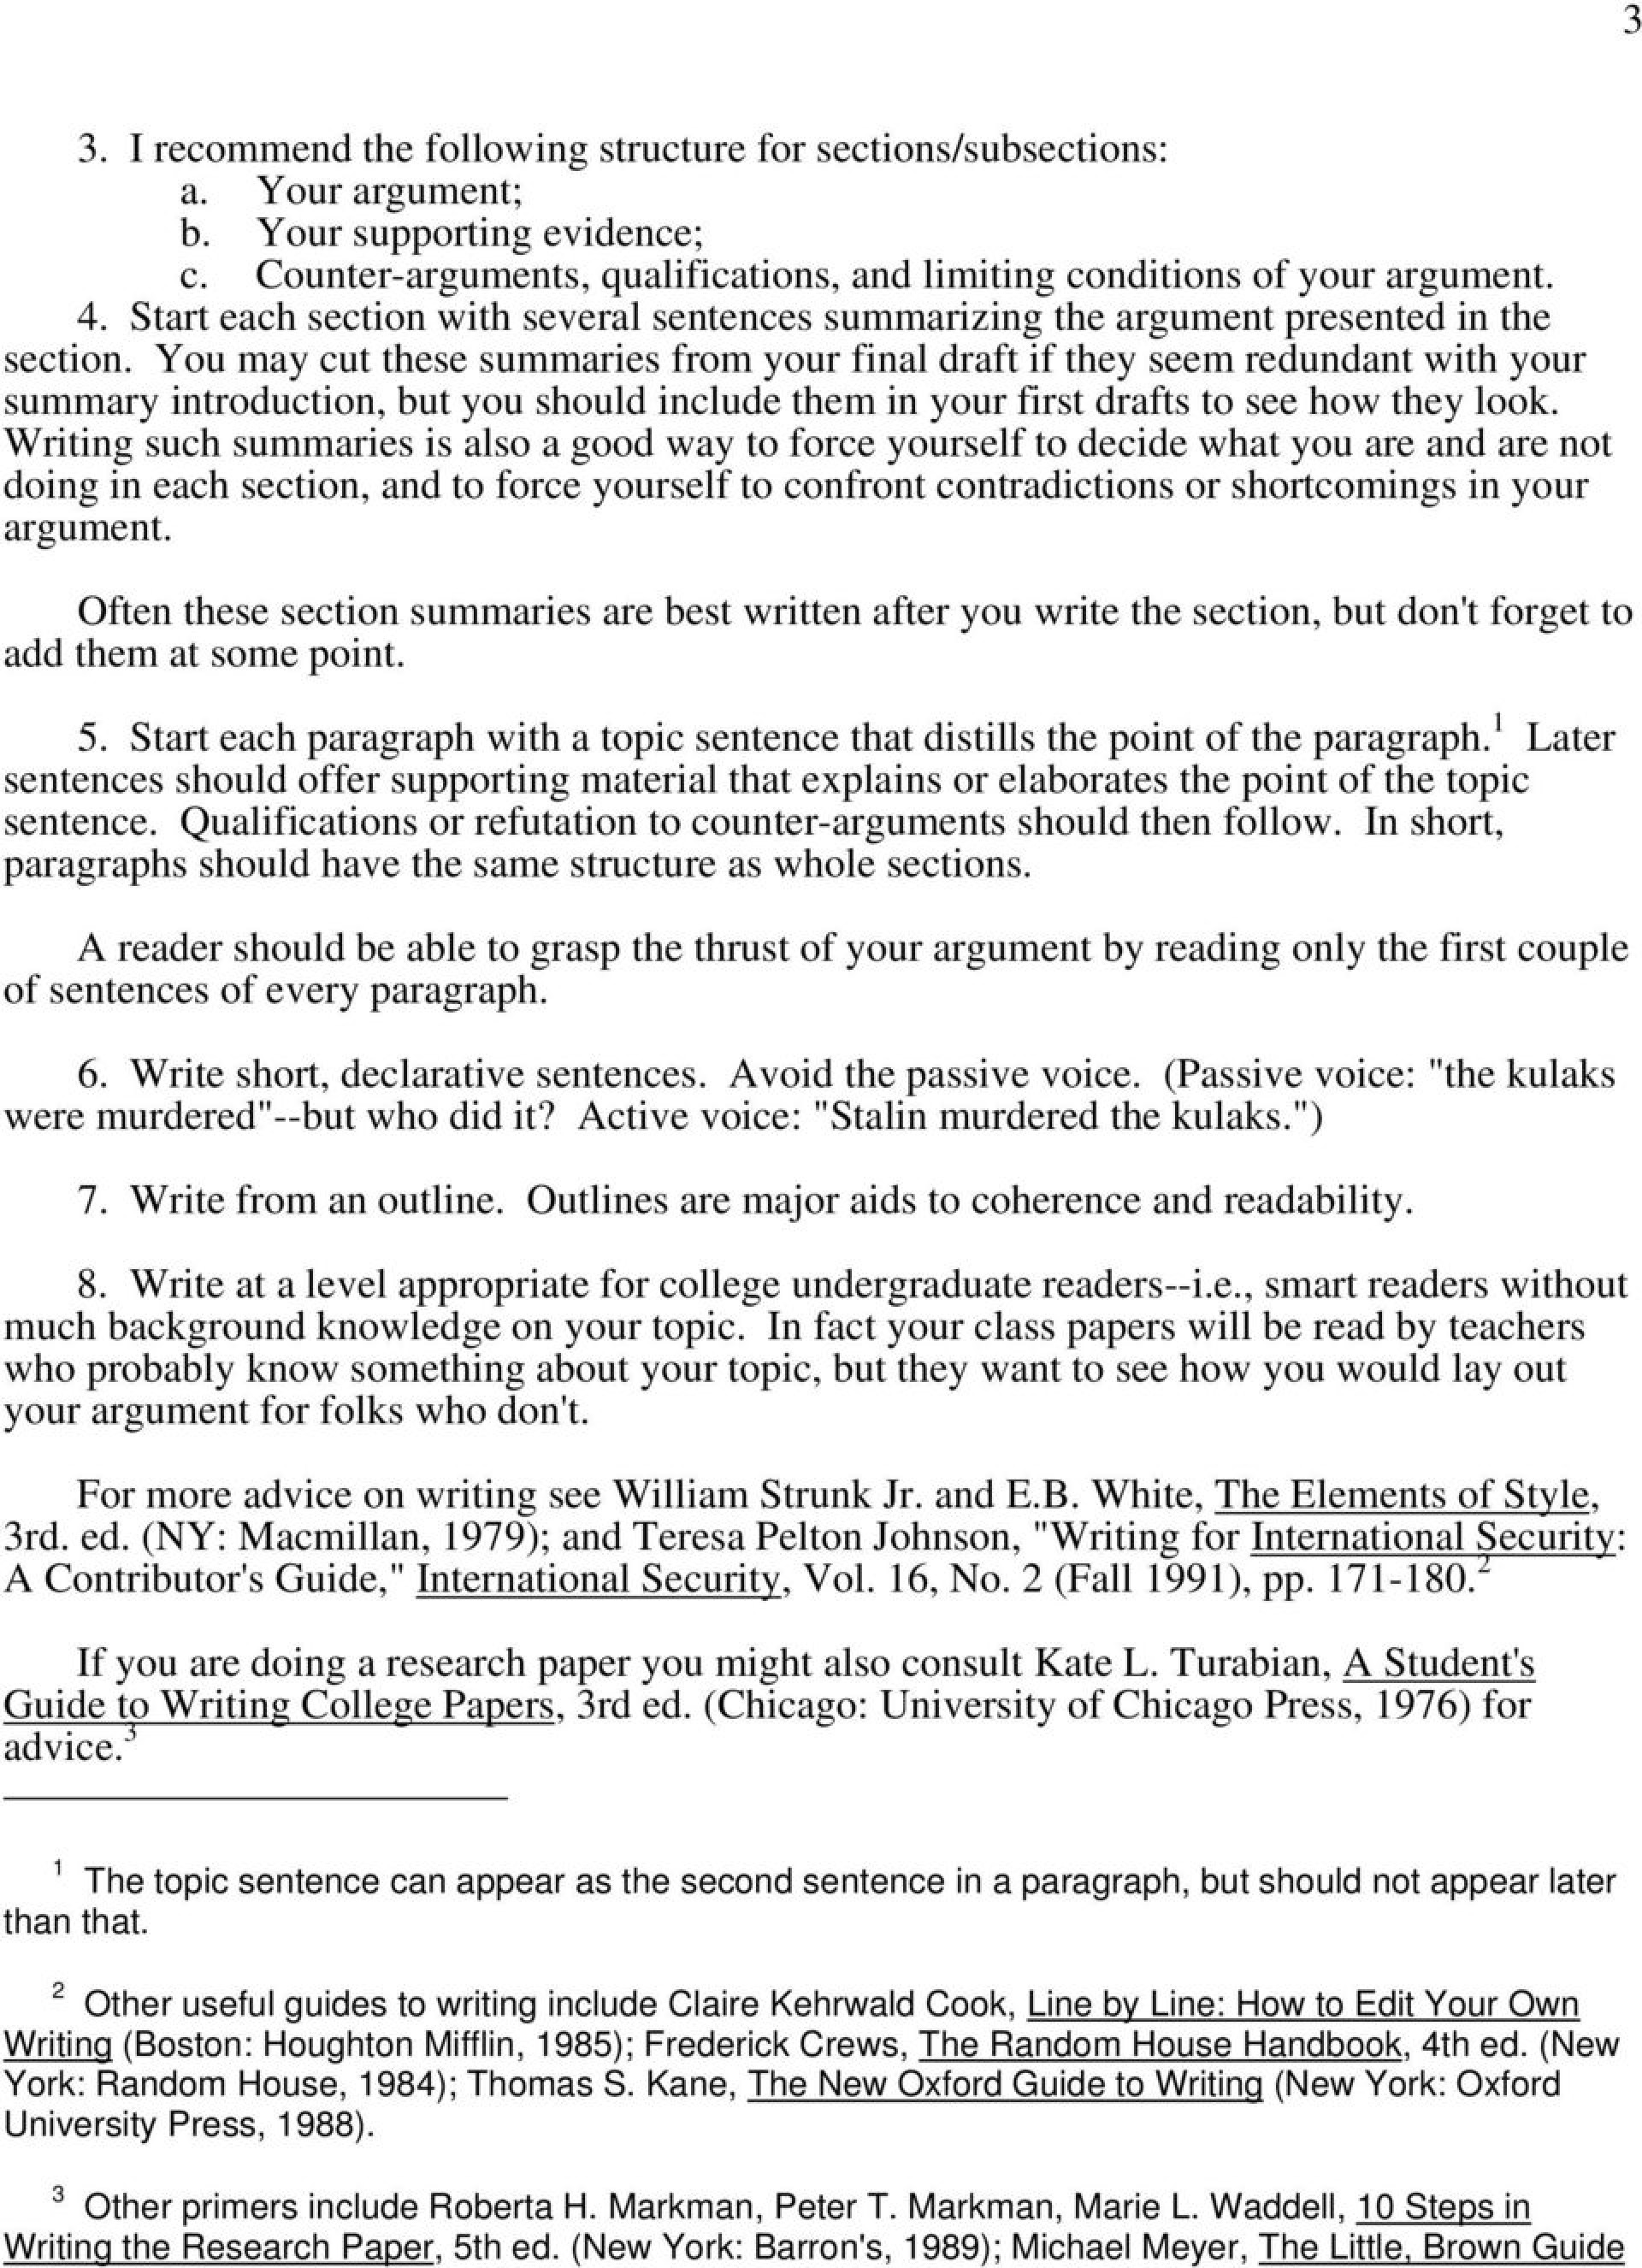 004 Steps In Writing The Research Paper Markman Page 3 Awful 10 Pdf 1920